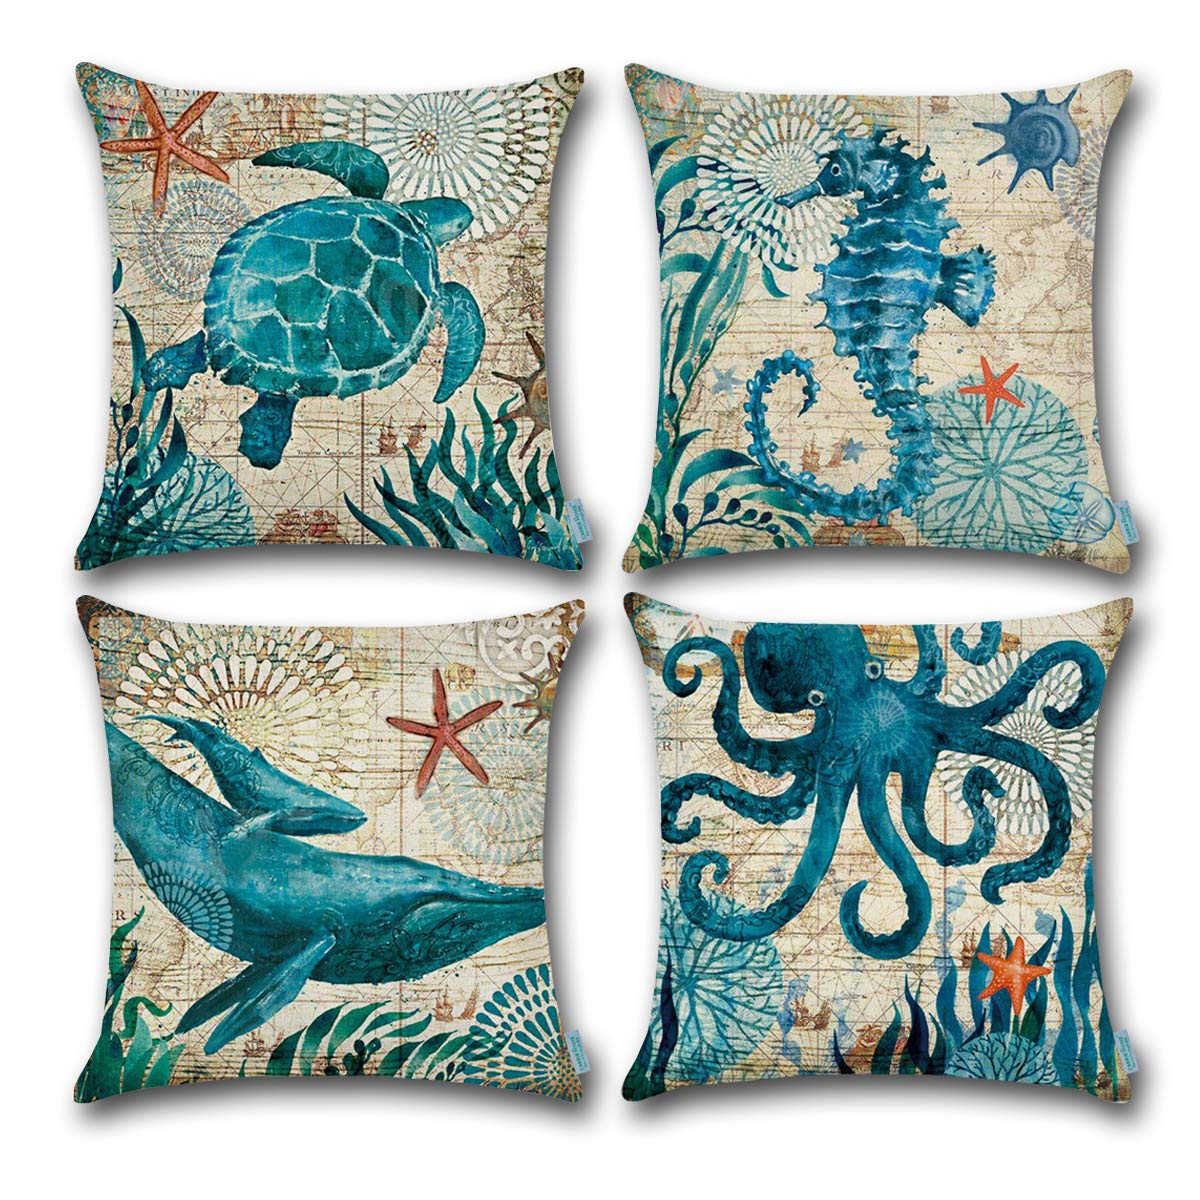 CARRIE HOME Nautical Pillows Decor Octopus/Seahorse/Whale/Turtle Decorative Throw Pillow Covers 18 x 18 Inch for Beach House, Set of 4